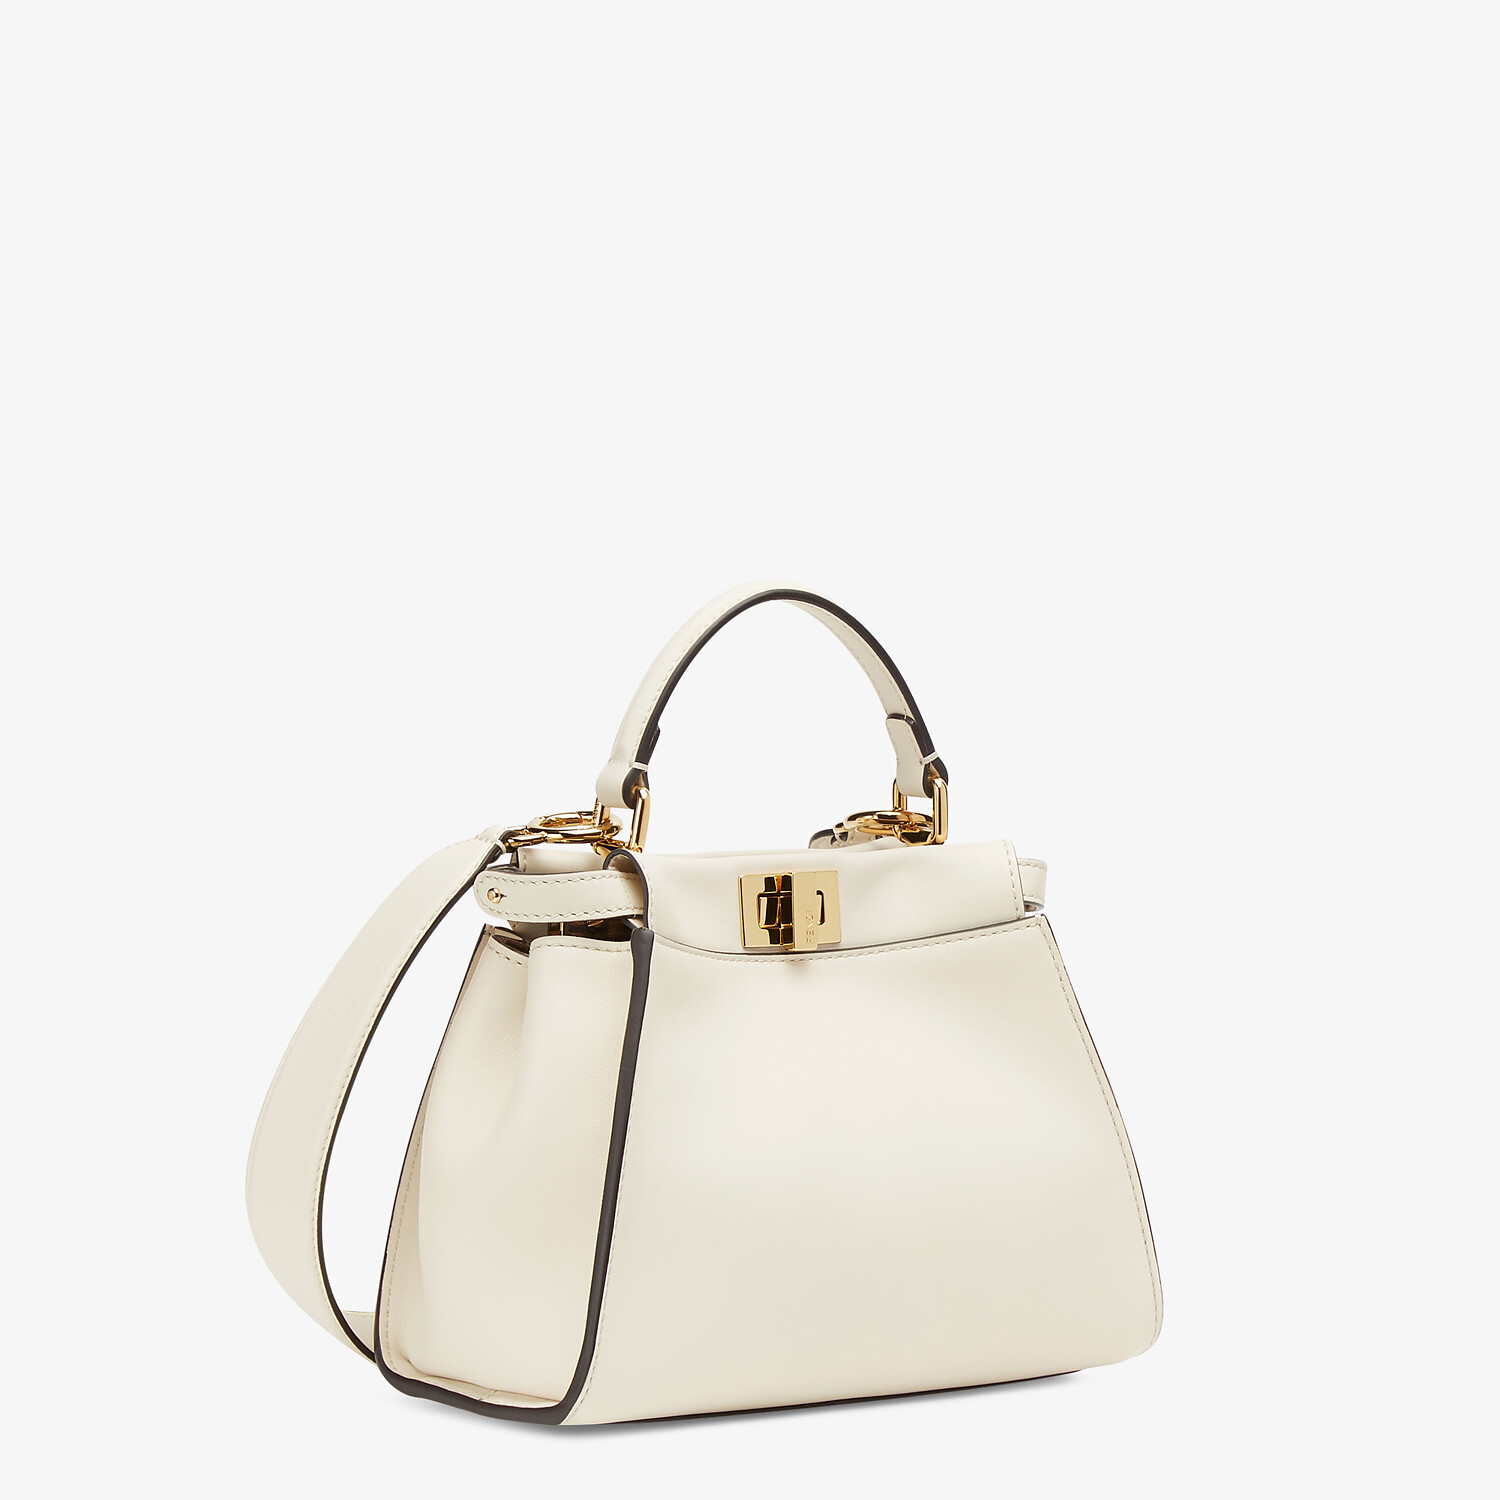 FENDI PEEKABOO ICONIC MINI - White leather bag - view 3 detail